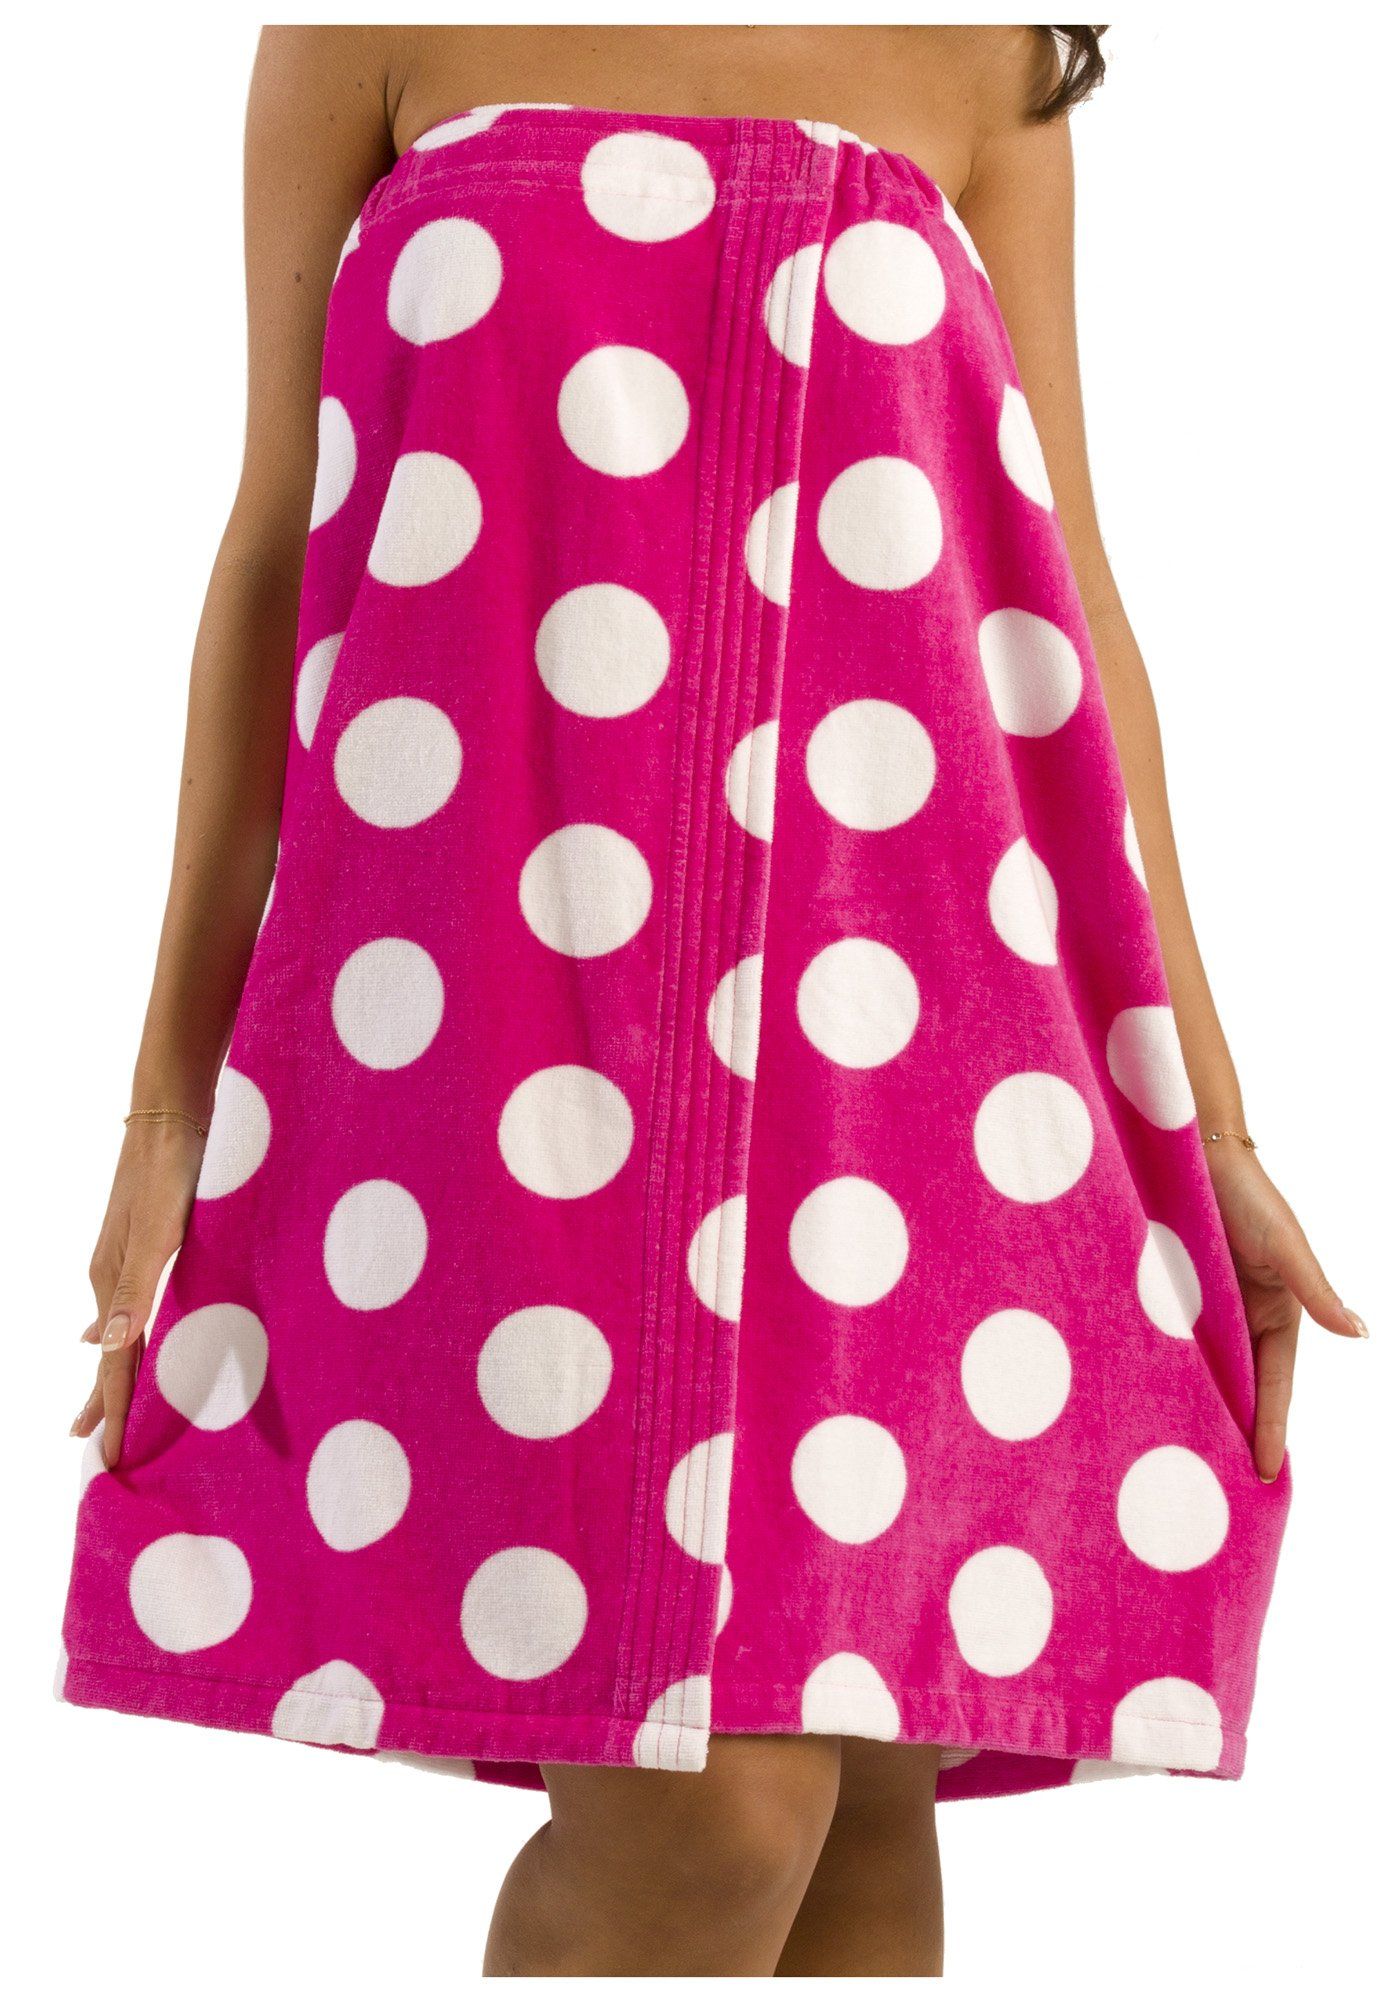 byLora Terry Cotton Shower Bath Wrap Women Towel, Cover Up Towel Beach Swimming Pool for Ladies - Fuchsia - One Size